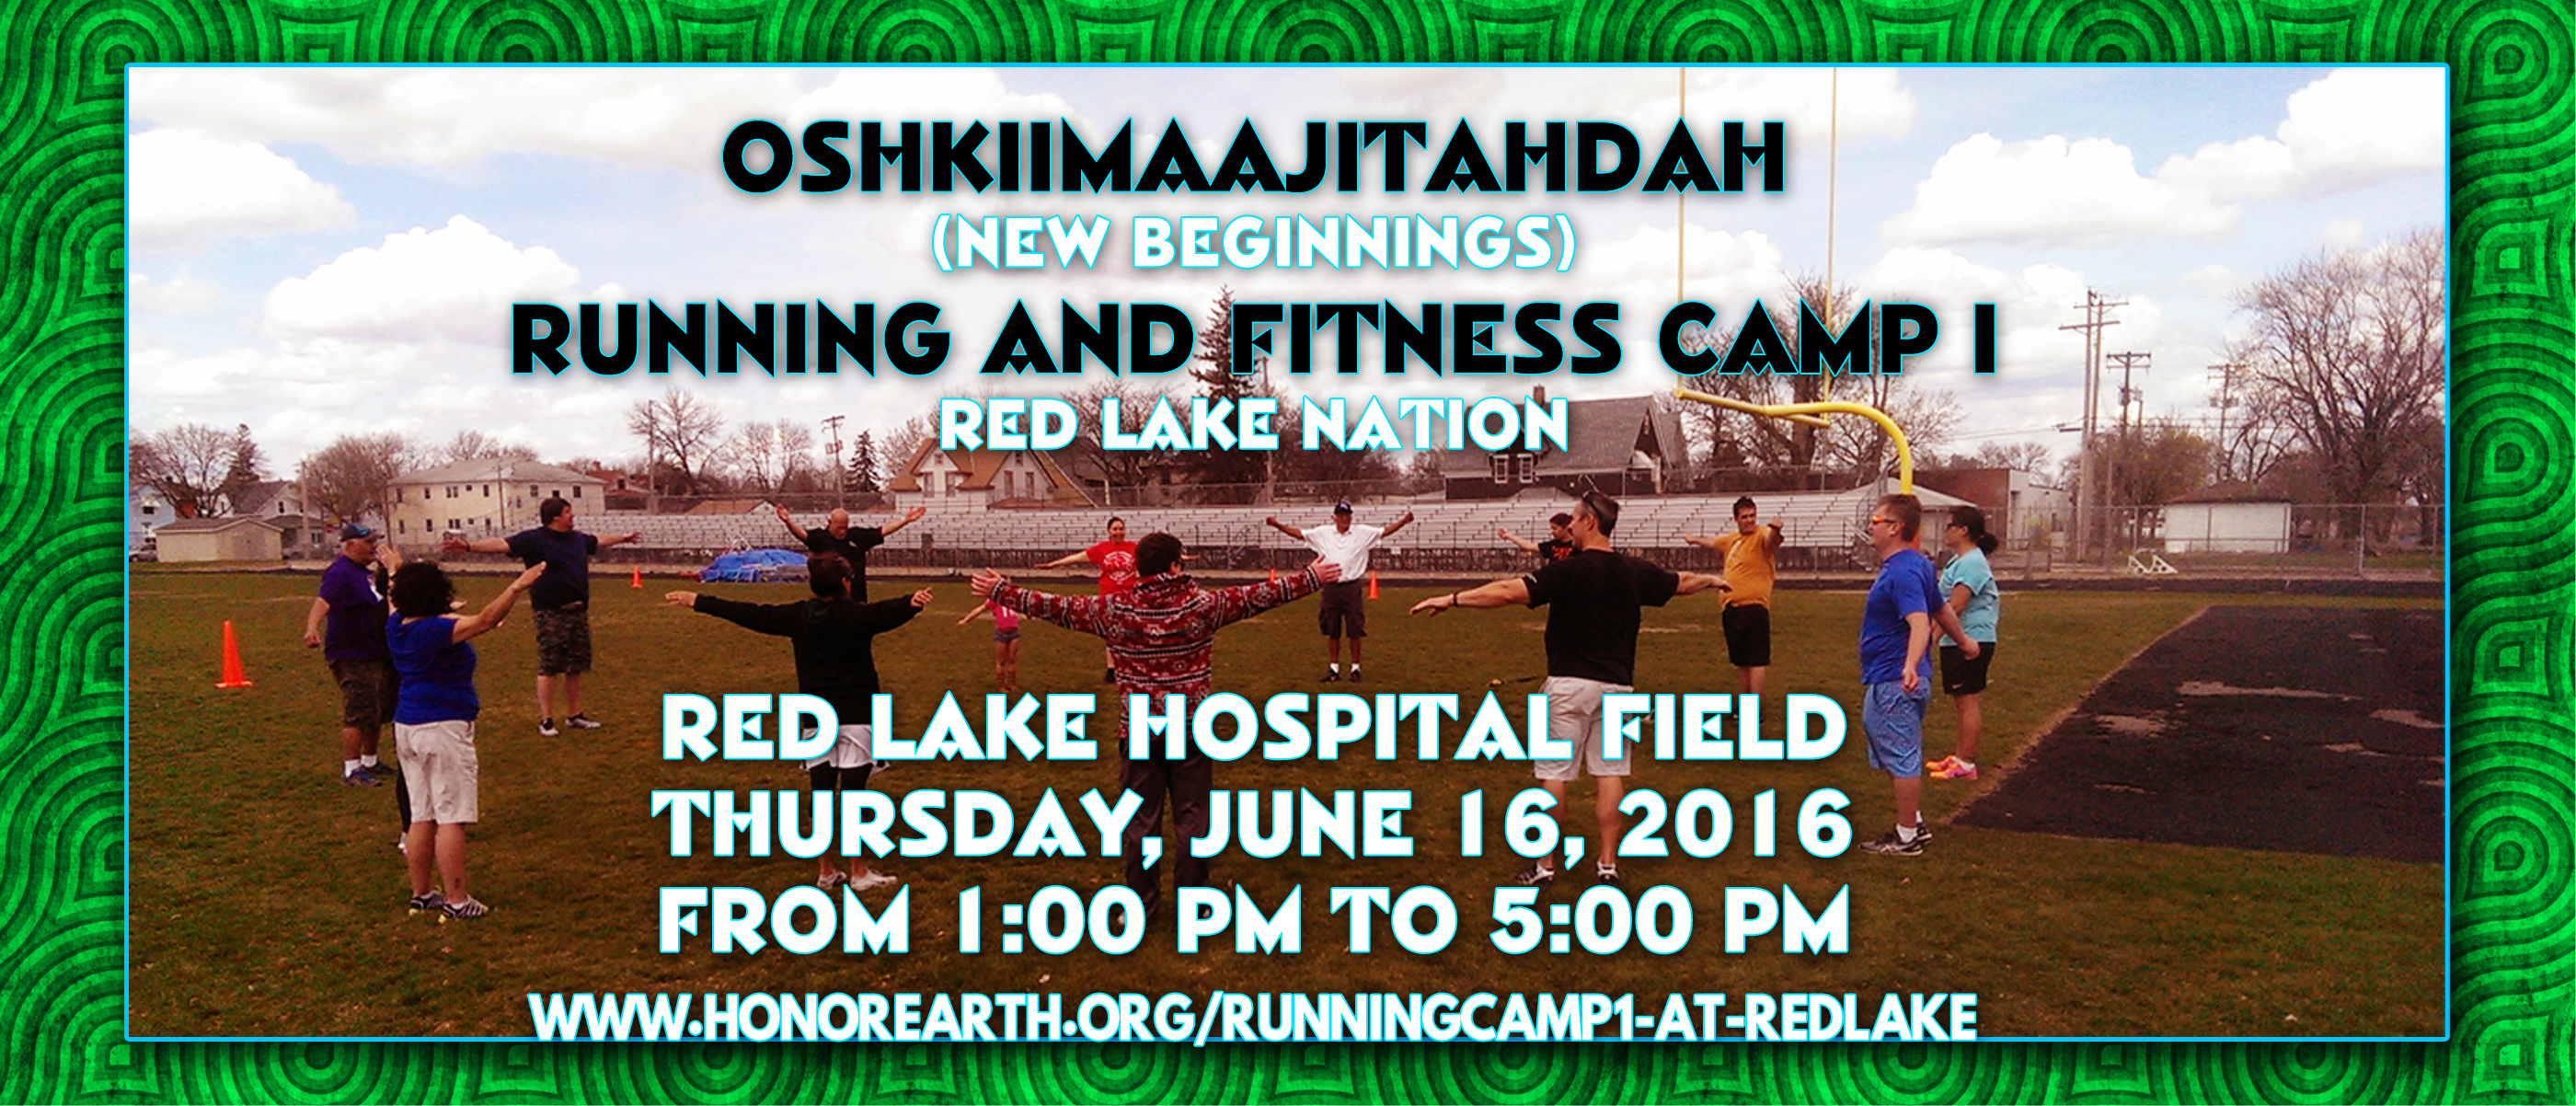 runningcampbanner_copy.jpg